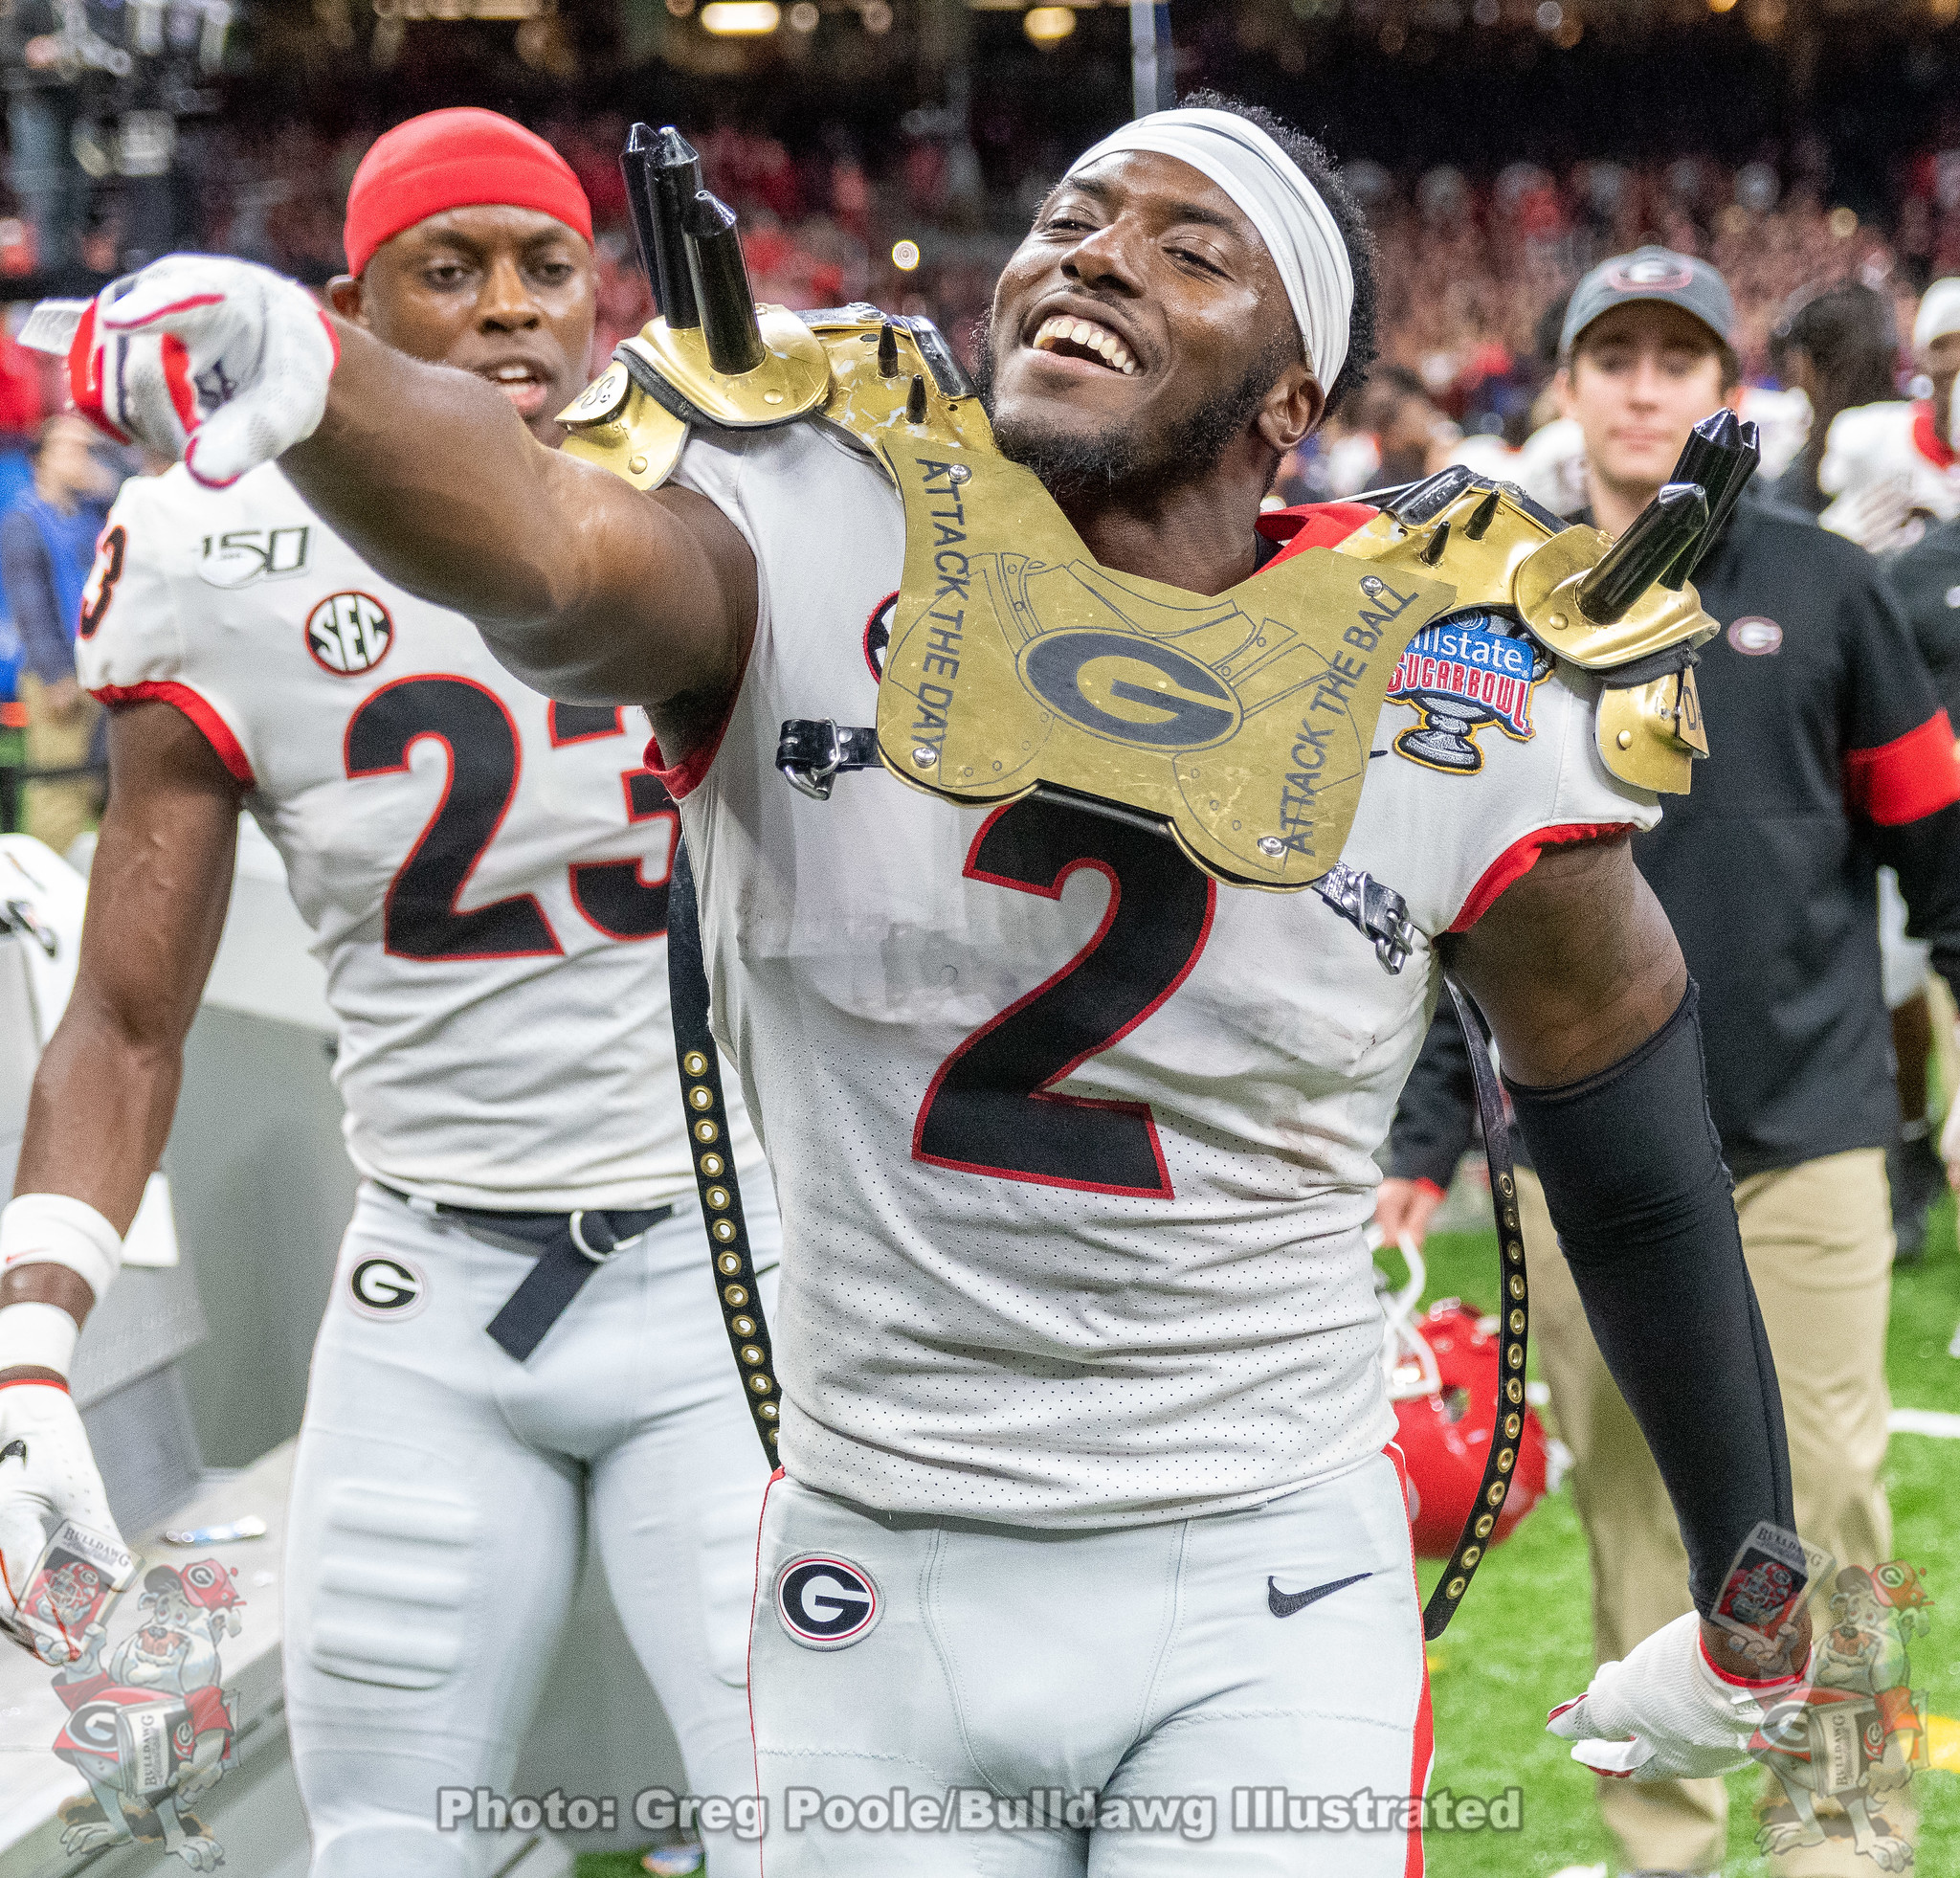 Richard LeCounte (2) 2020 Sugar Bowl - Georgia vs. Baylor 2020 - Postgame - January 01, 2020